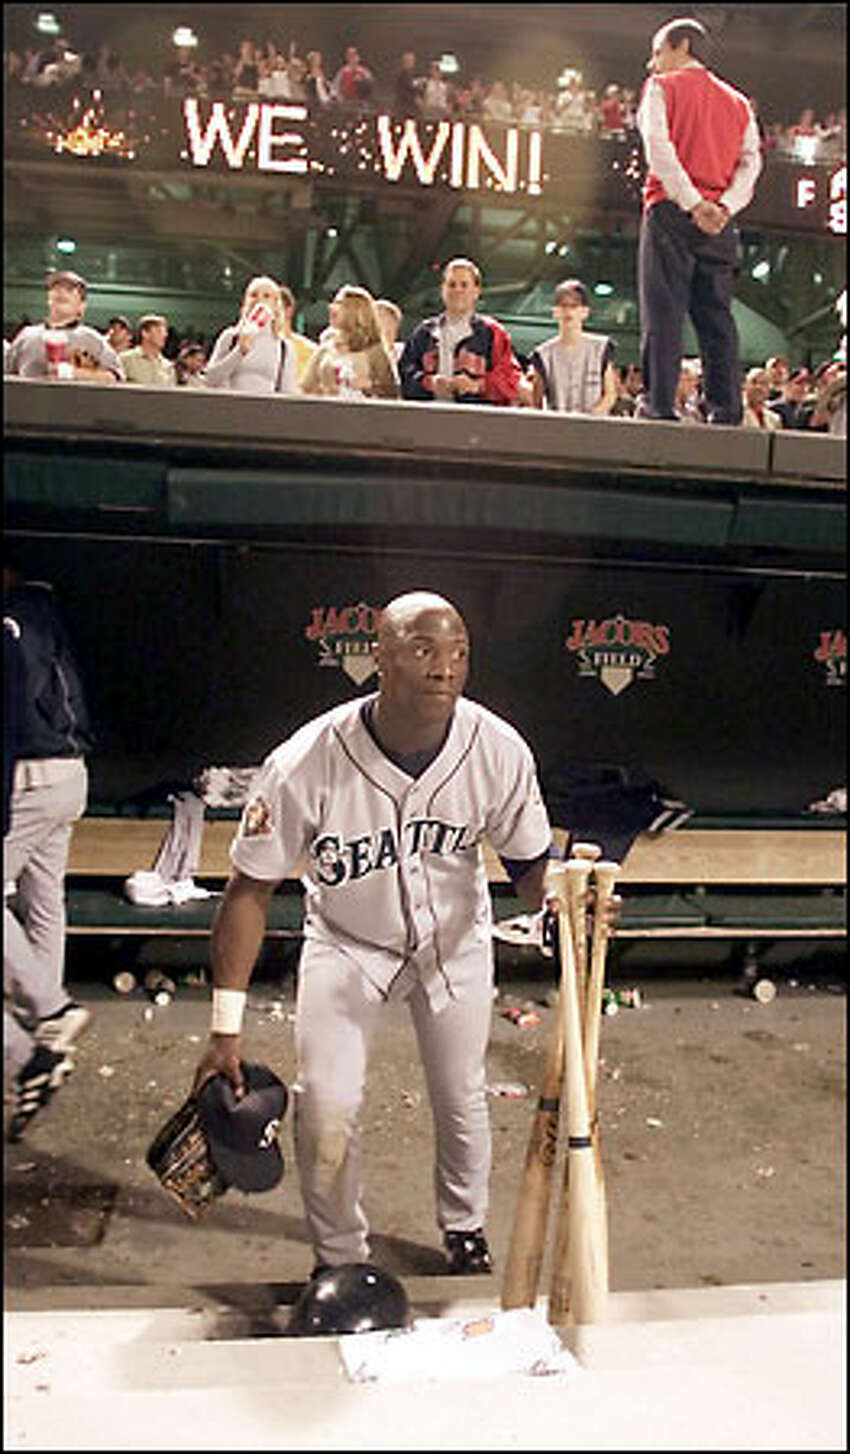 Mike Cameron picks up his bats, glove and hat from the dugout after the Mariners' 17-2 loss to the Cleveland Indians.